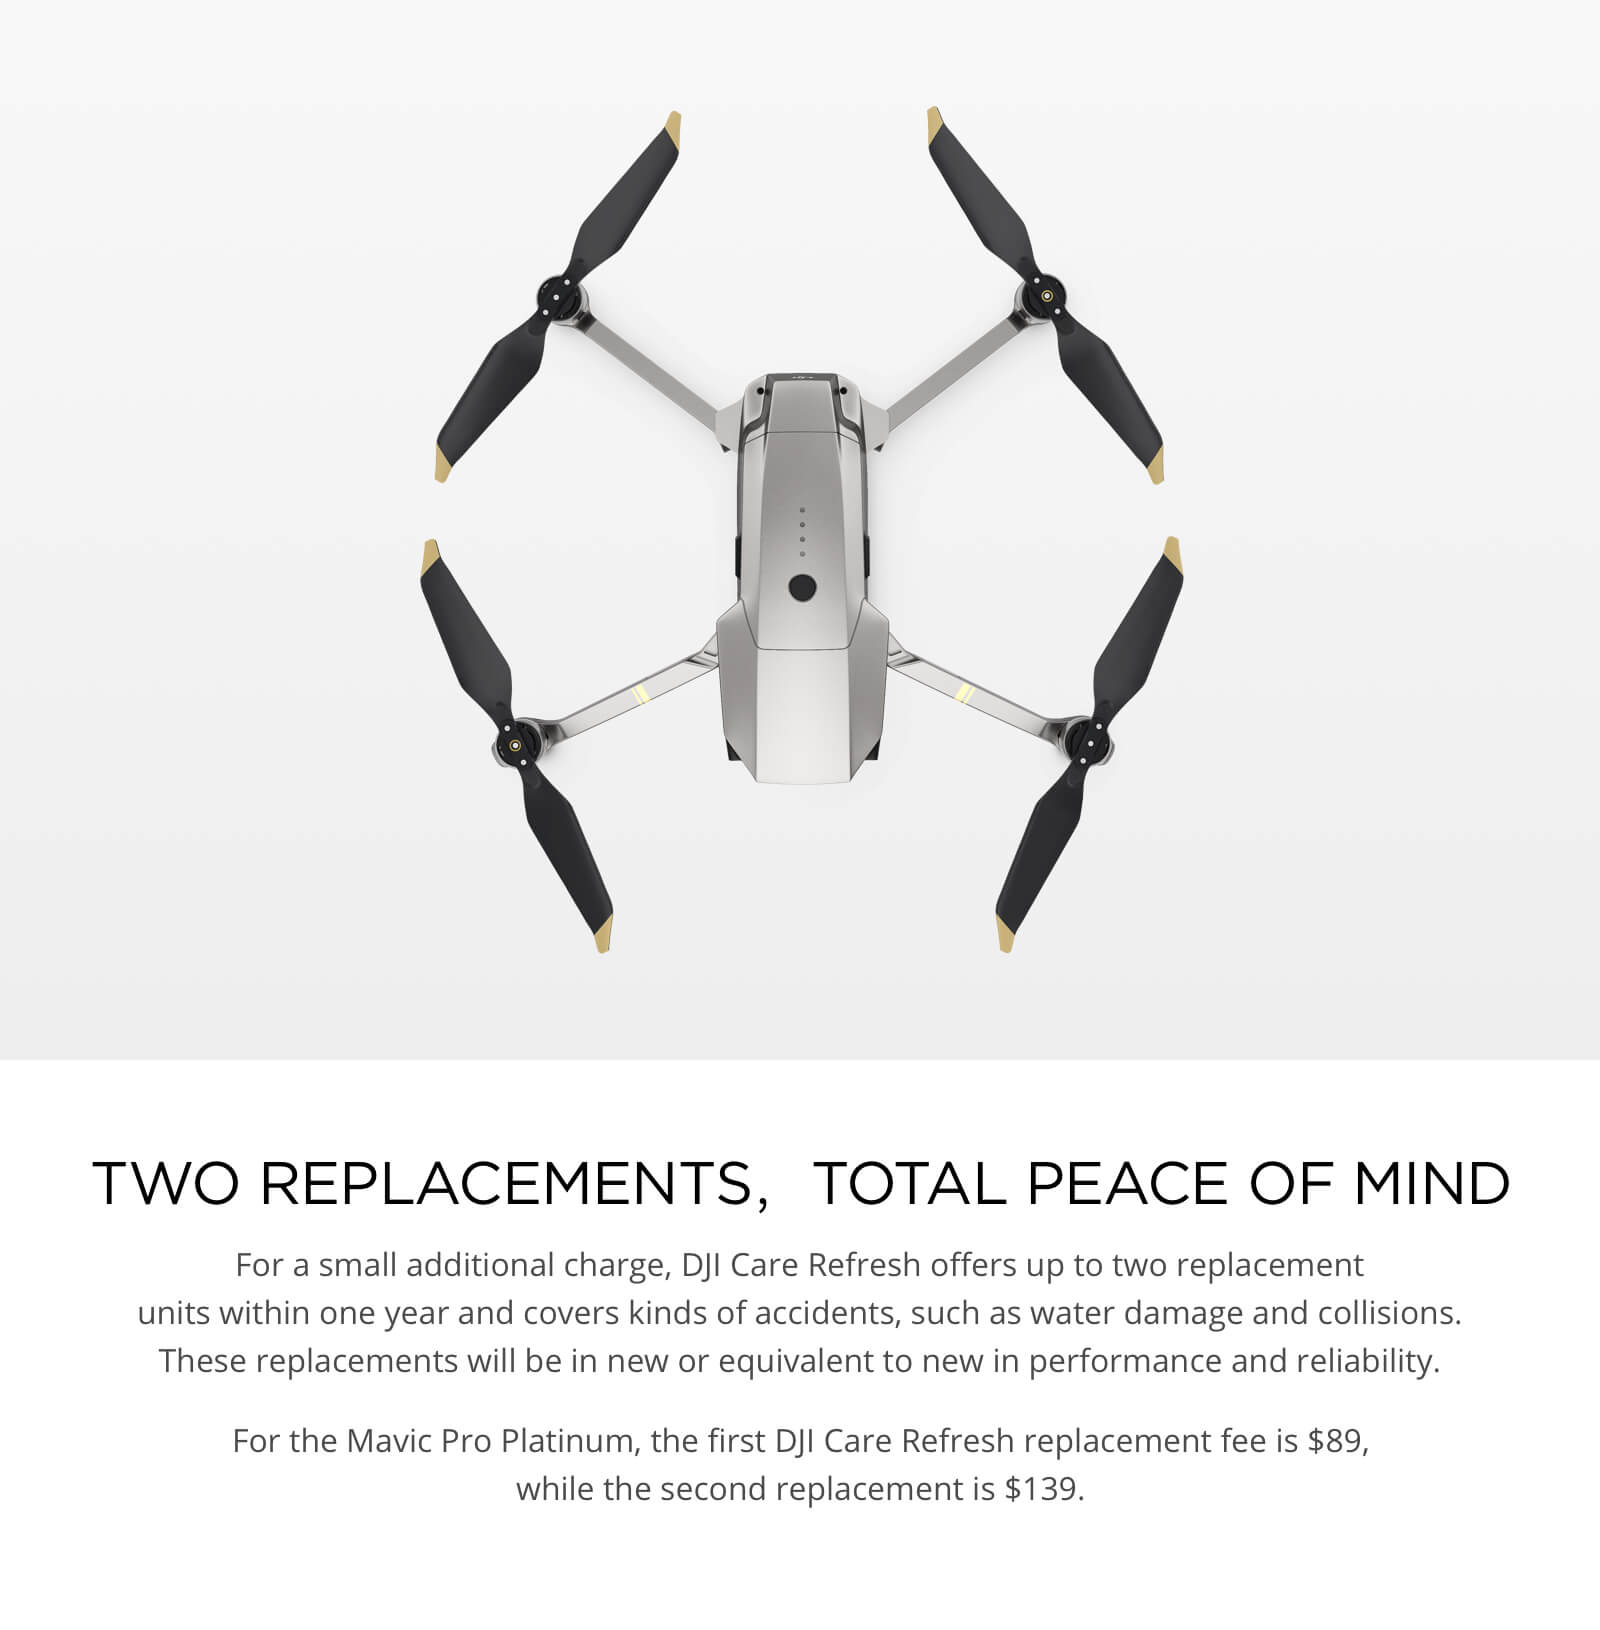 04Two%20Replacements%uFF0CTotal%20Peace%20of%20mind%20mavic%20plantium.jpg